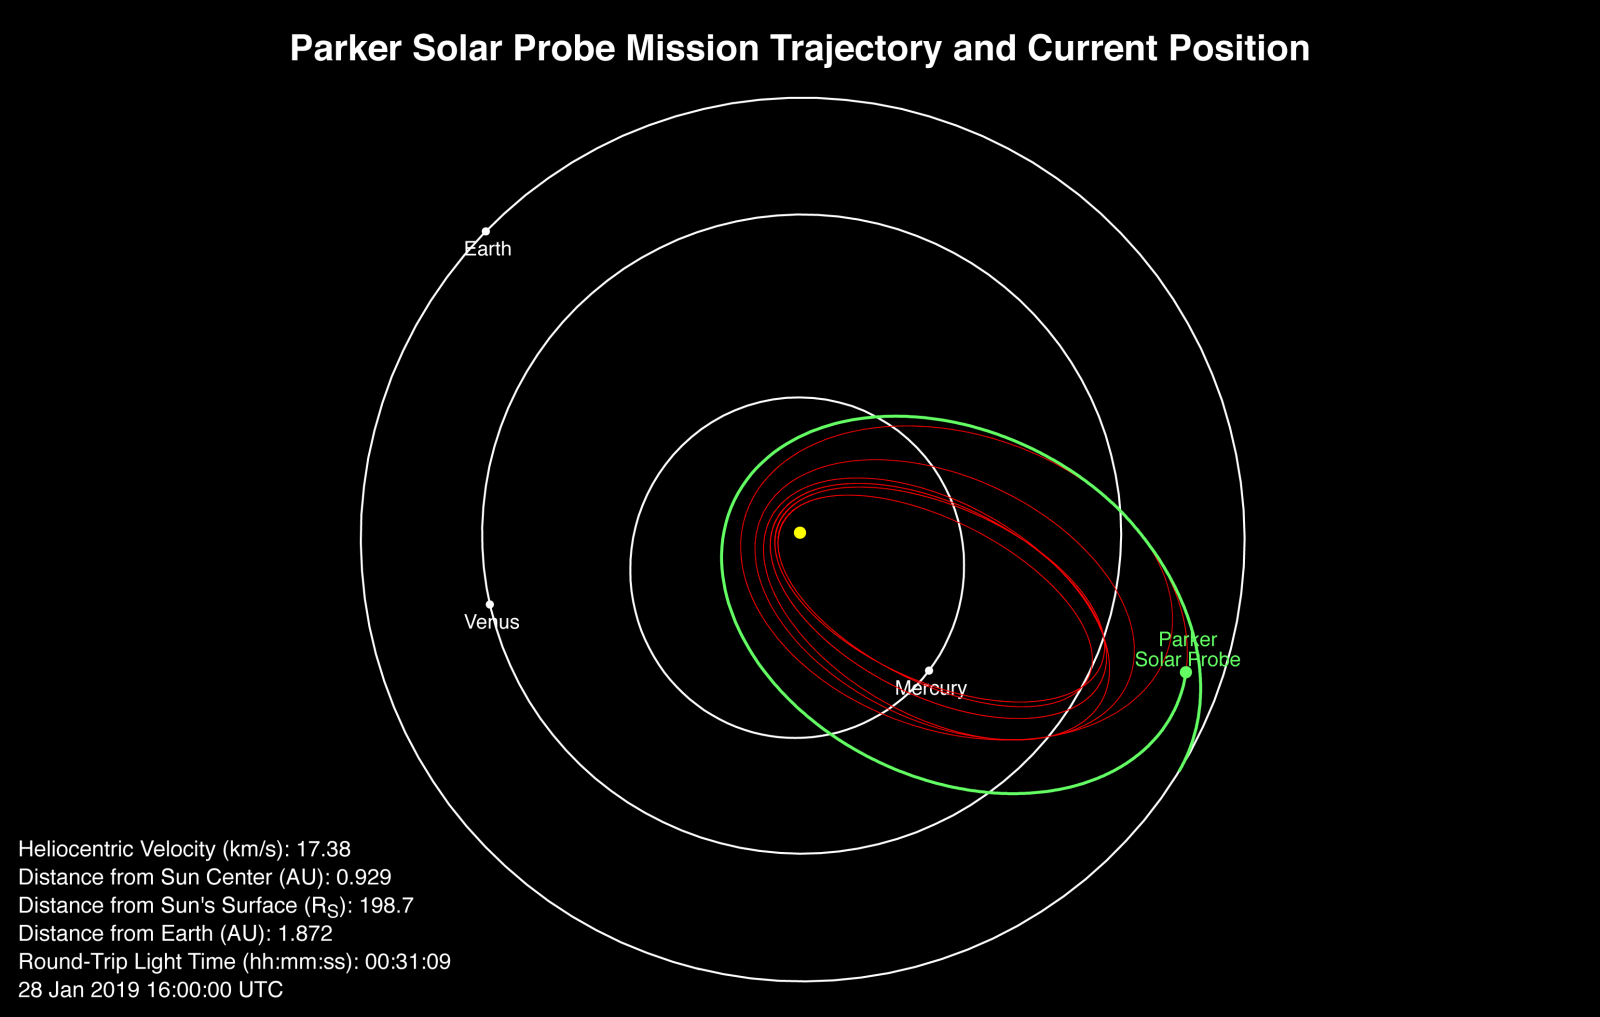 NASA released the following graphic which details Parker Solar Probe's speed, distance from the Sun and other key details about the mission as of Jan. 28, 2019. Image Credit: NASA